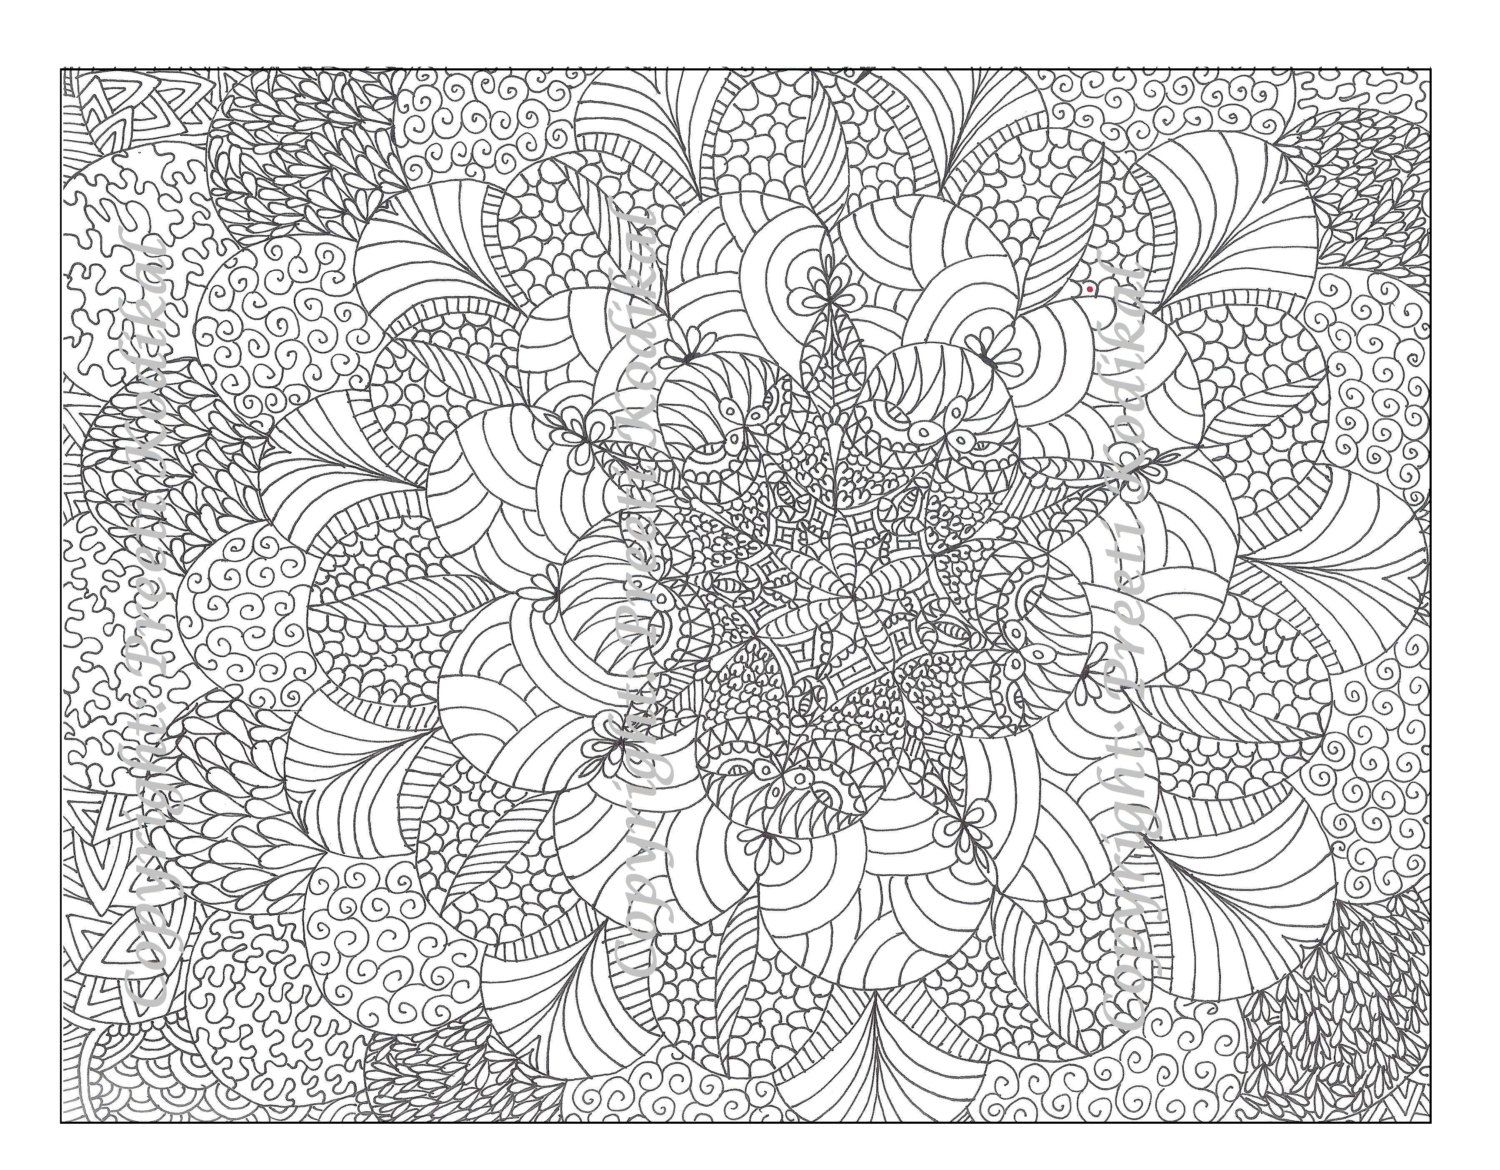 designs coloring pages for adults - photo#10